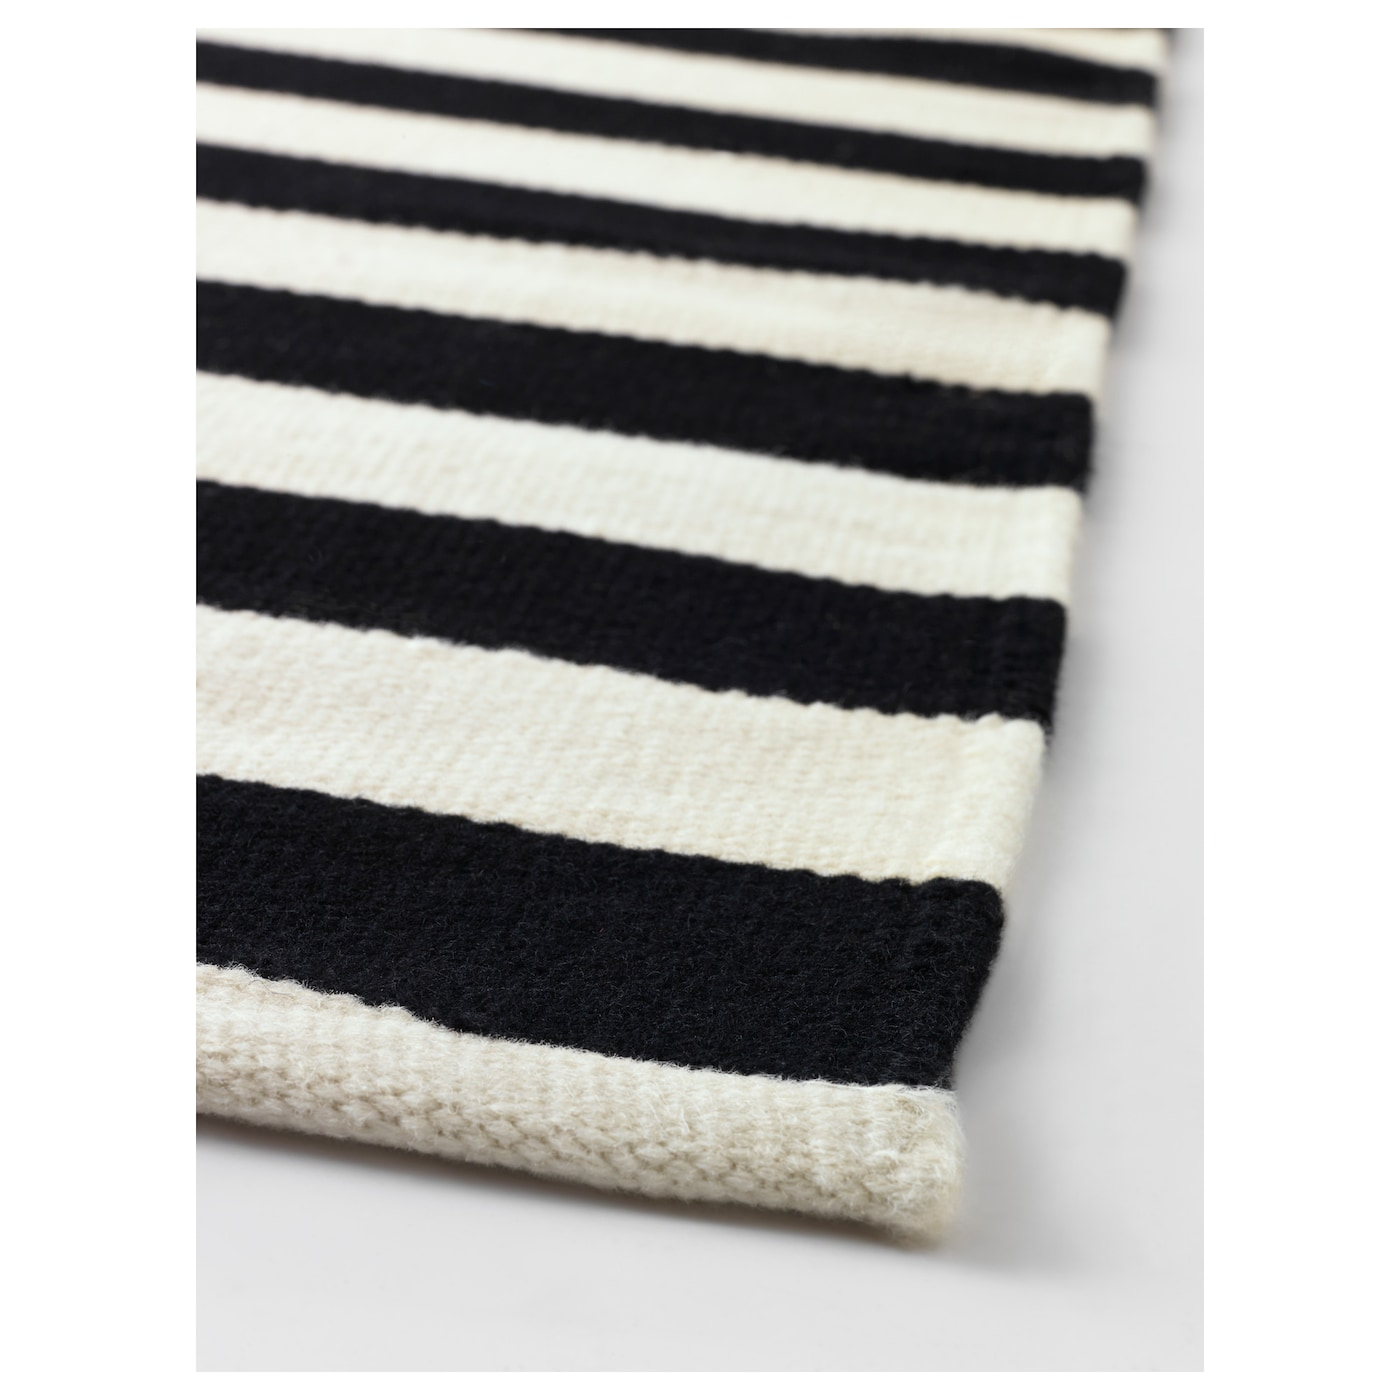 Stockholm Rug Flatwoven Handmade Striped Black Off White